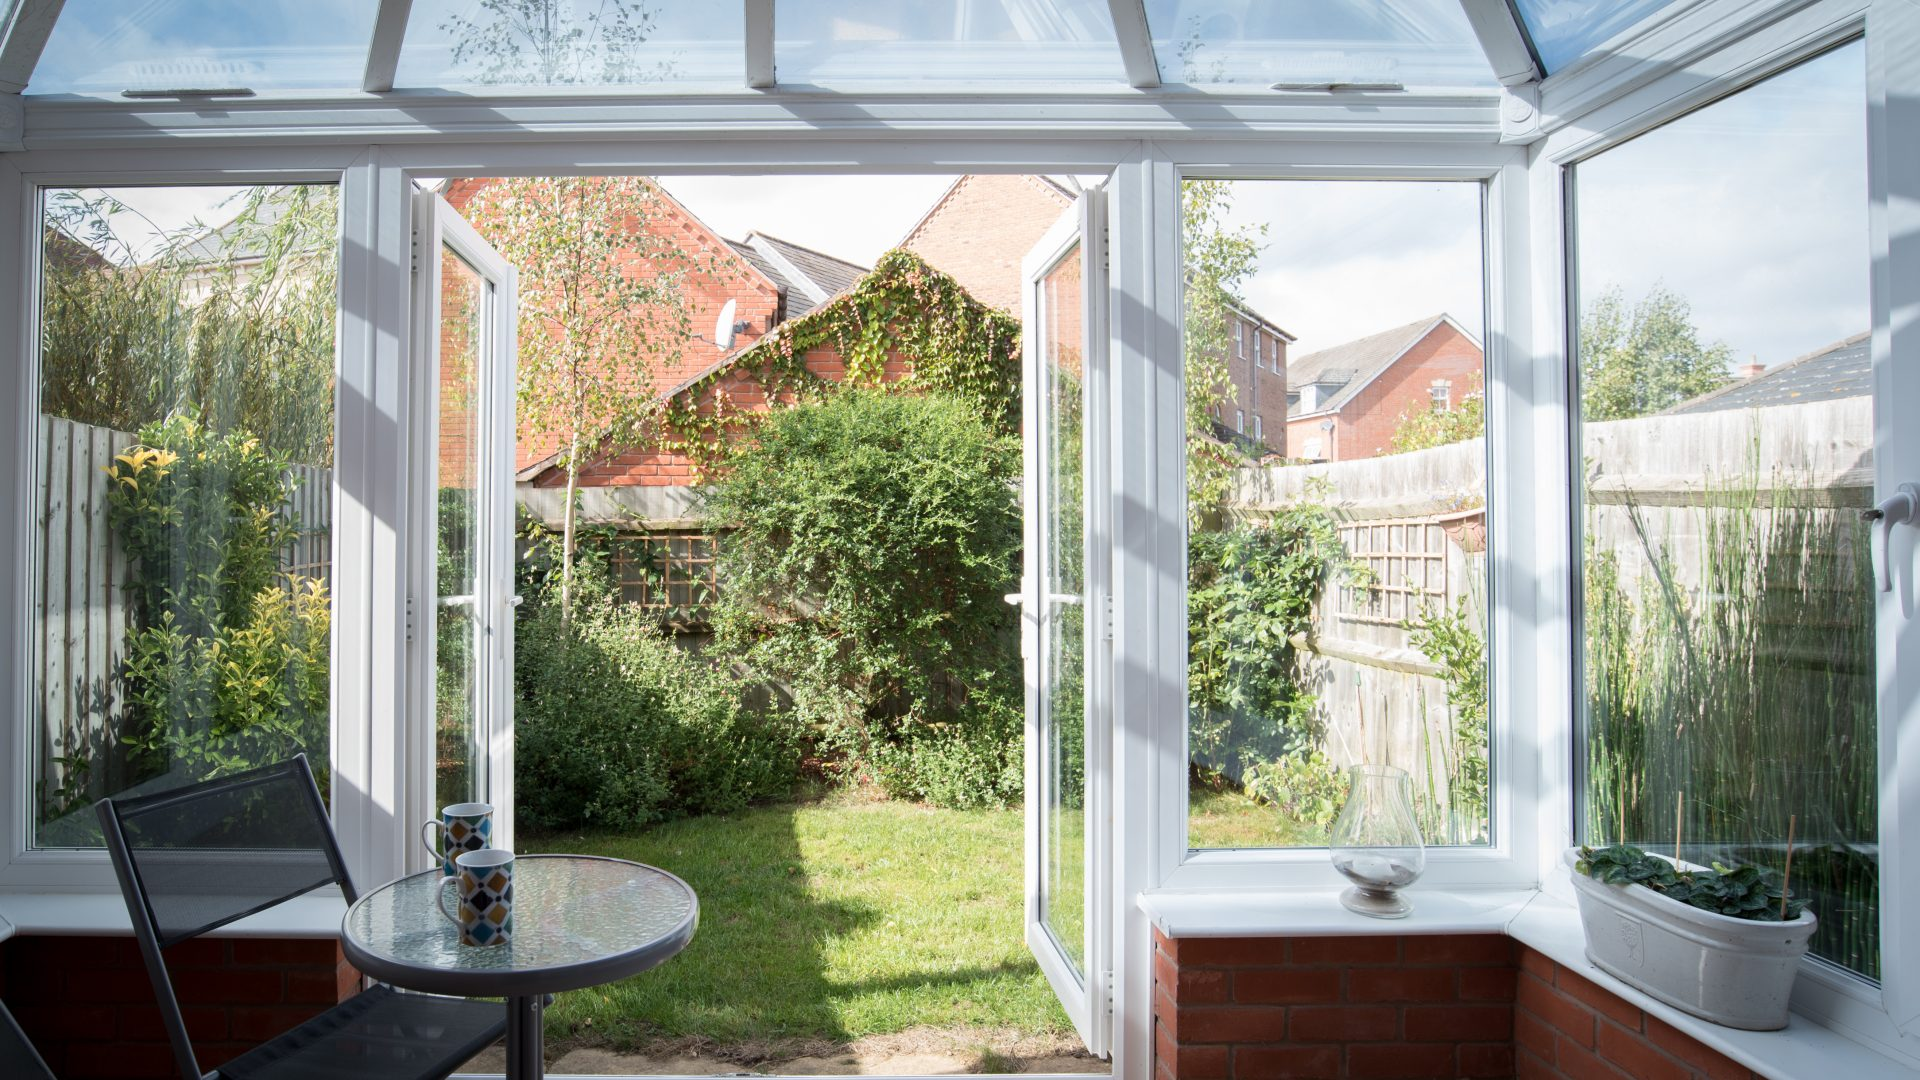 Lingfield Crescent, Stratford-Upon-Avon for sale with Mr and Mrs Clarke estate agent